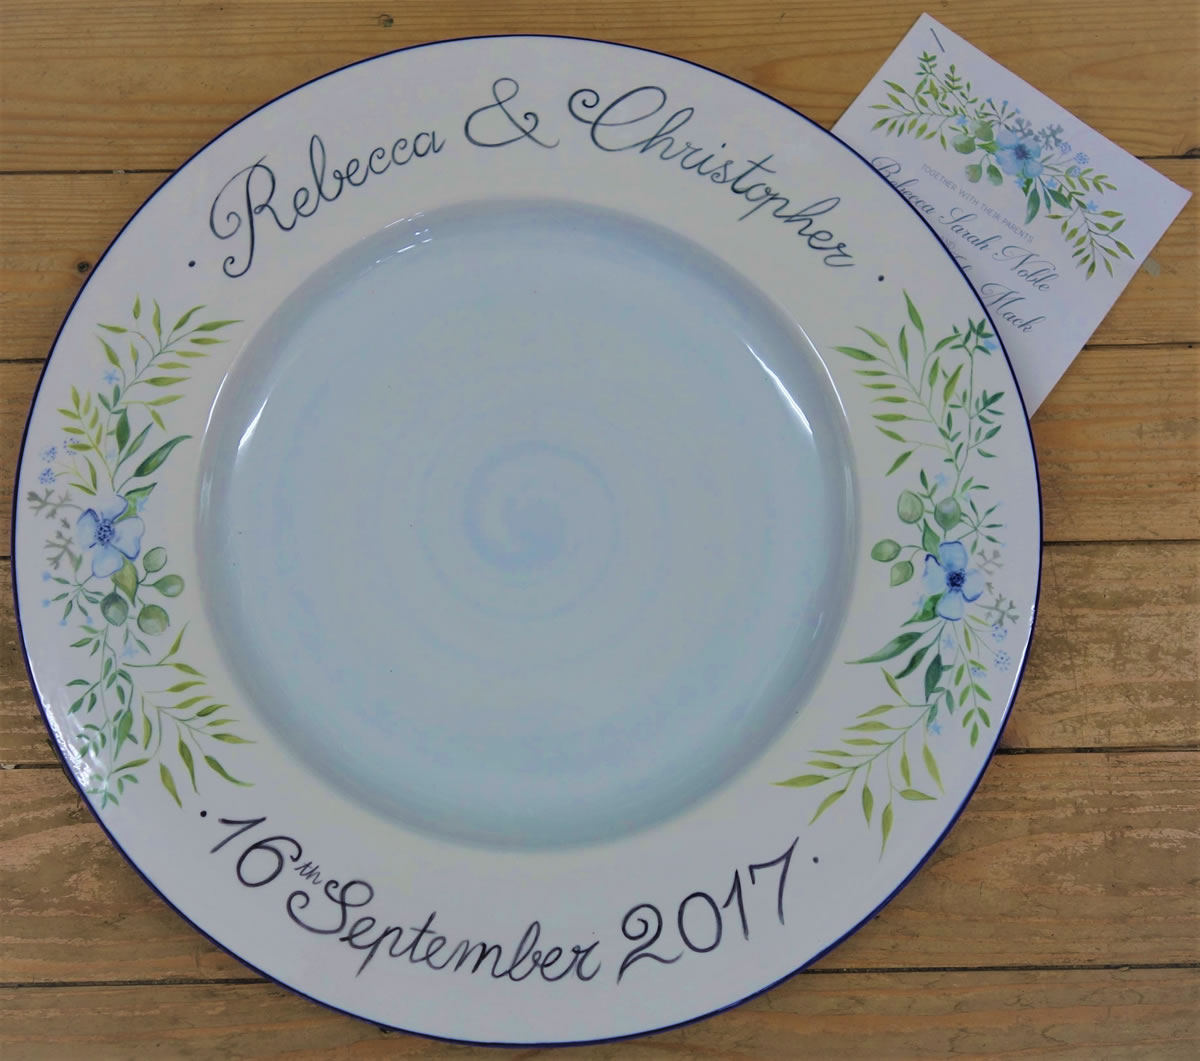 Wedding Signing Plate inspired by the wedding inviatation